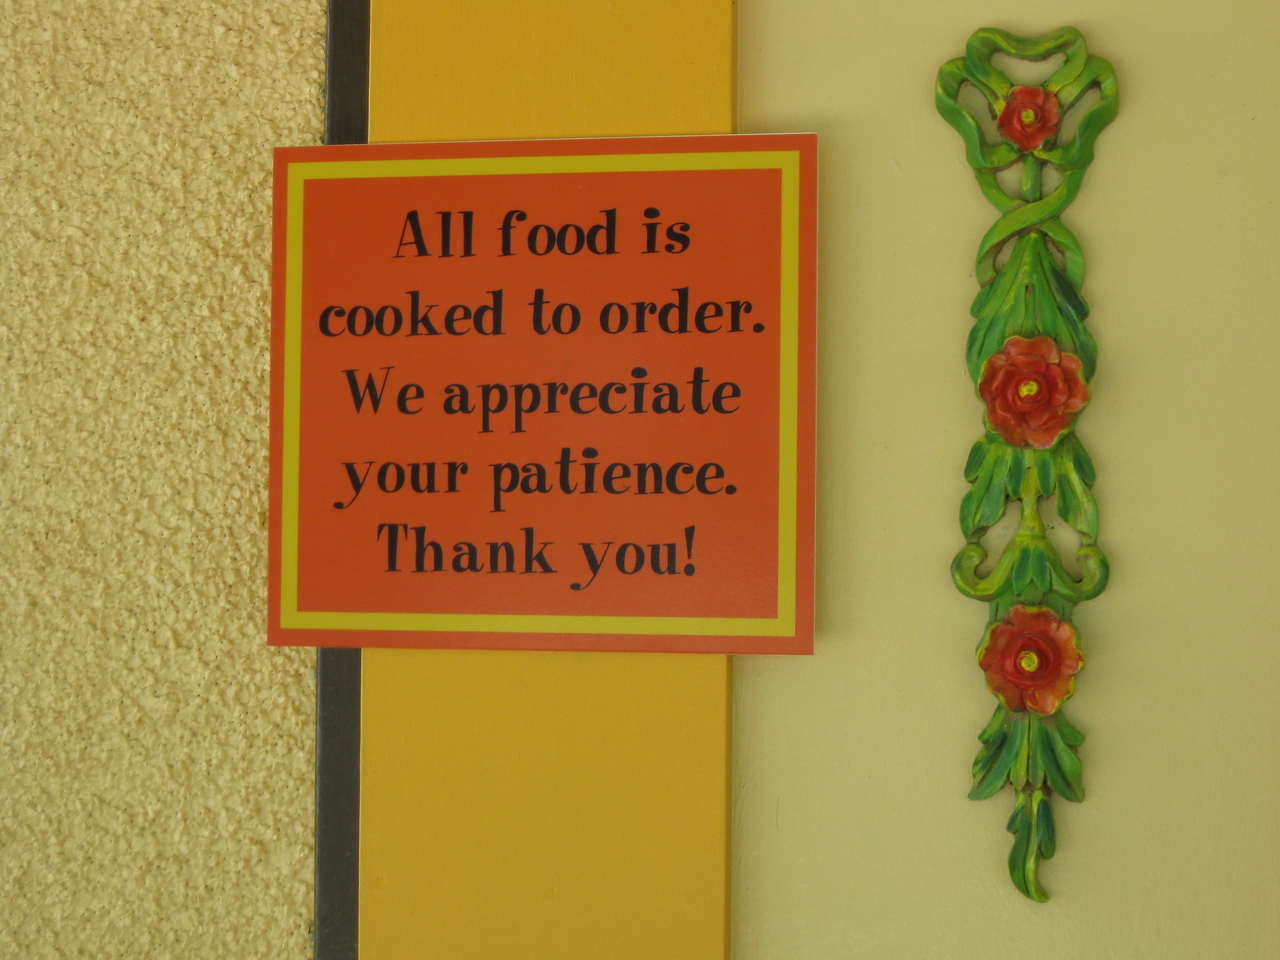 All food is cooked to order.